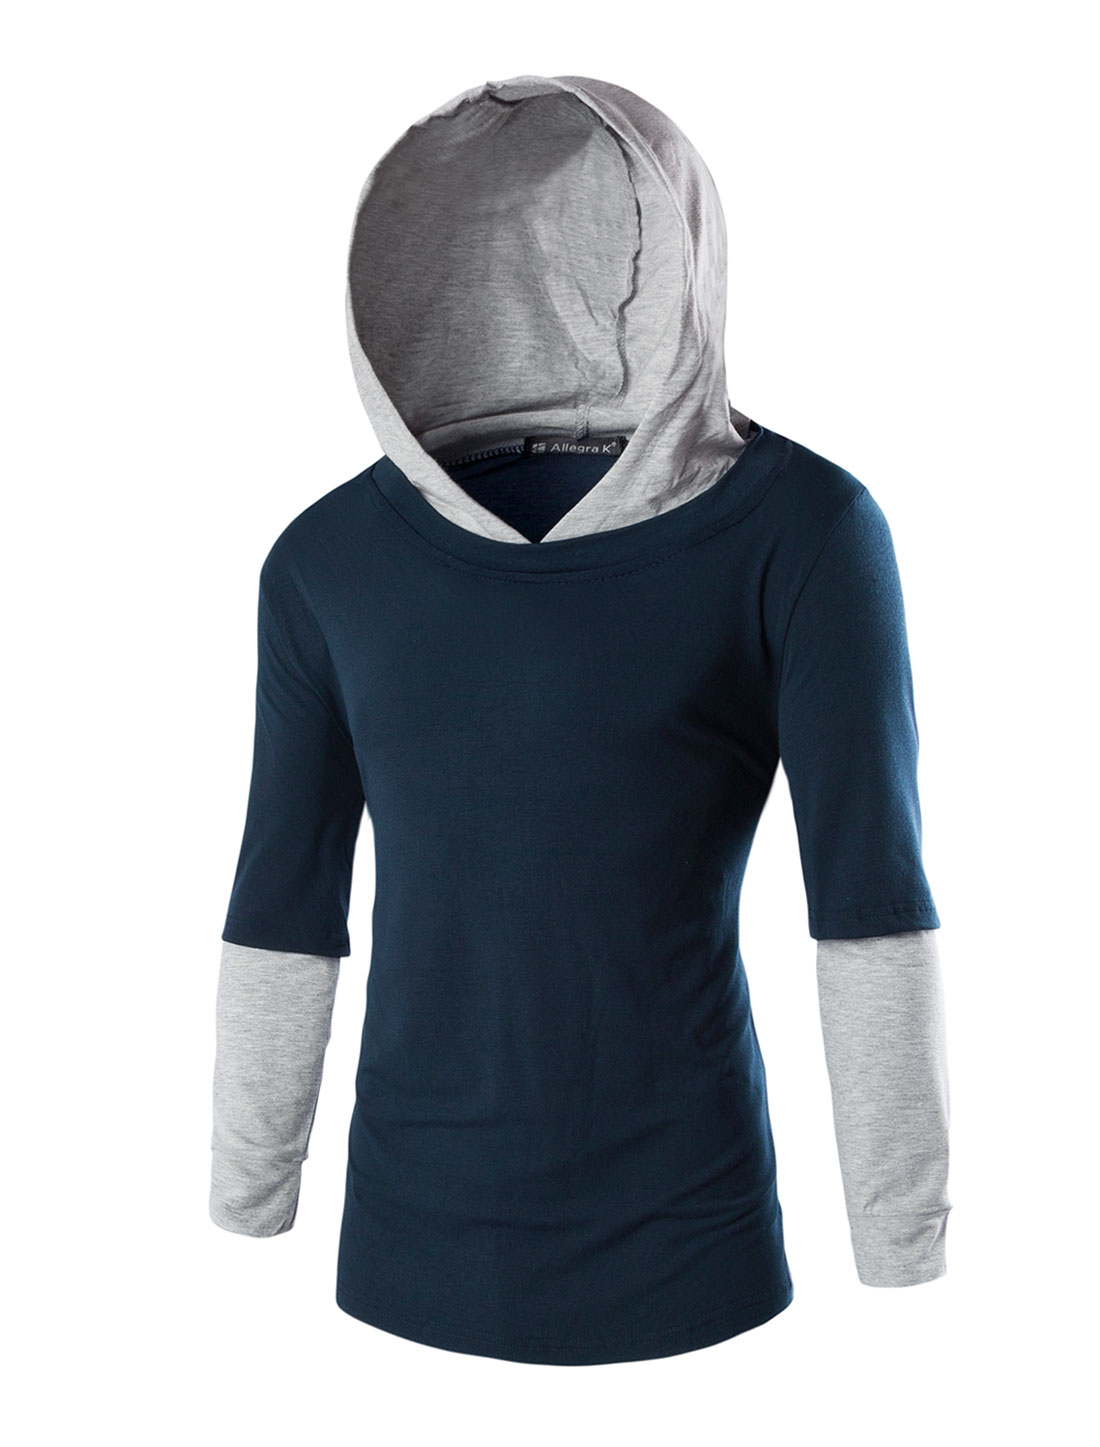 Men Long Sleeve Layered Design Hoodie Tee Shirt Navy Blue M